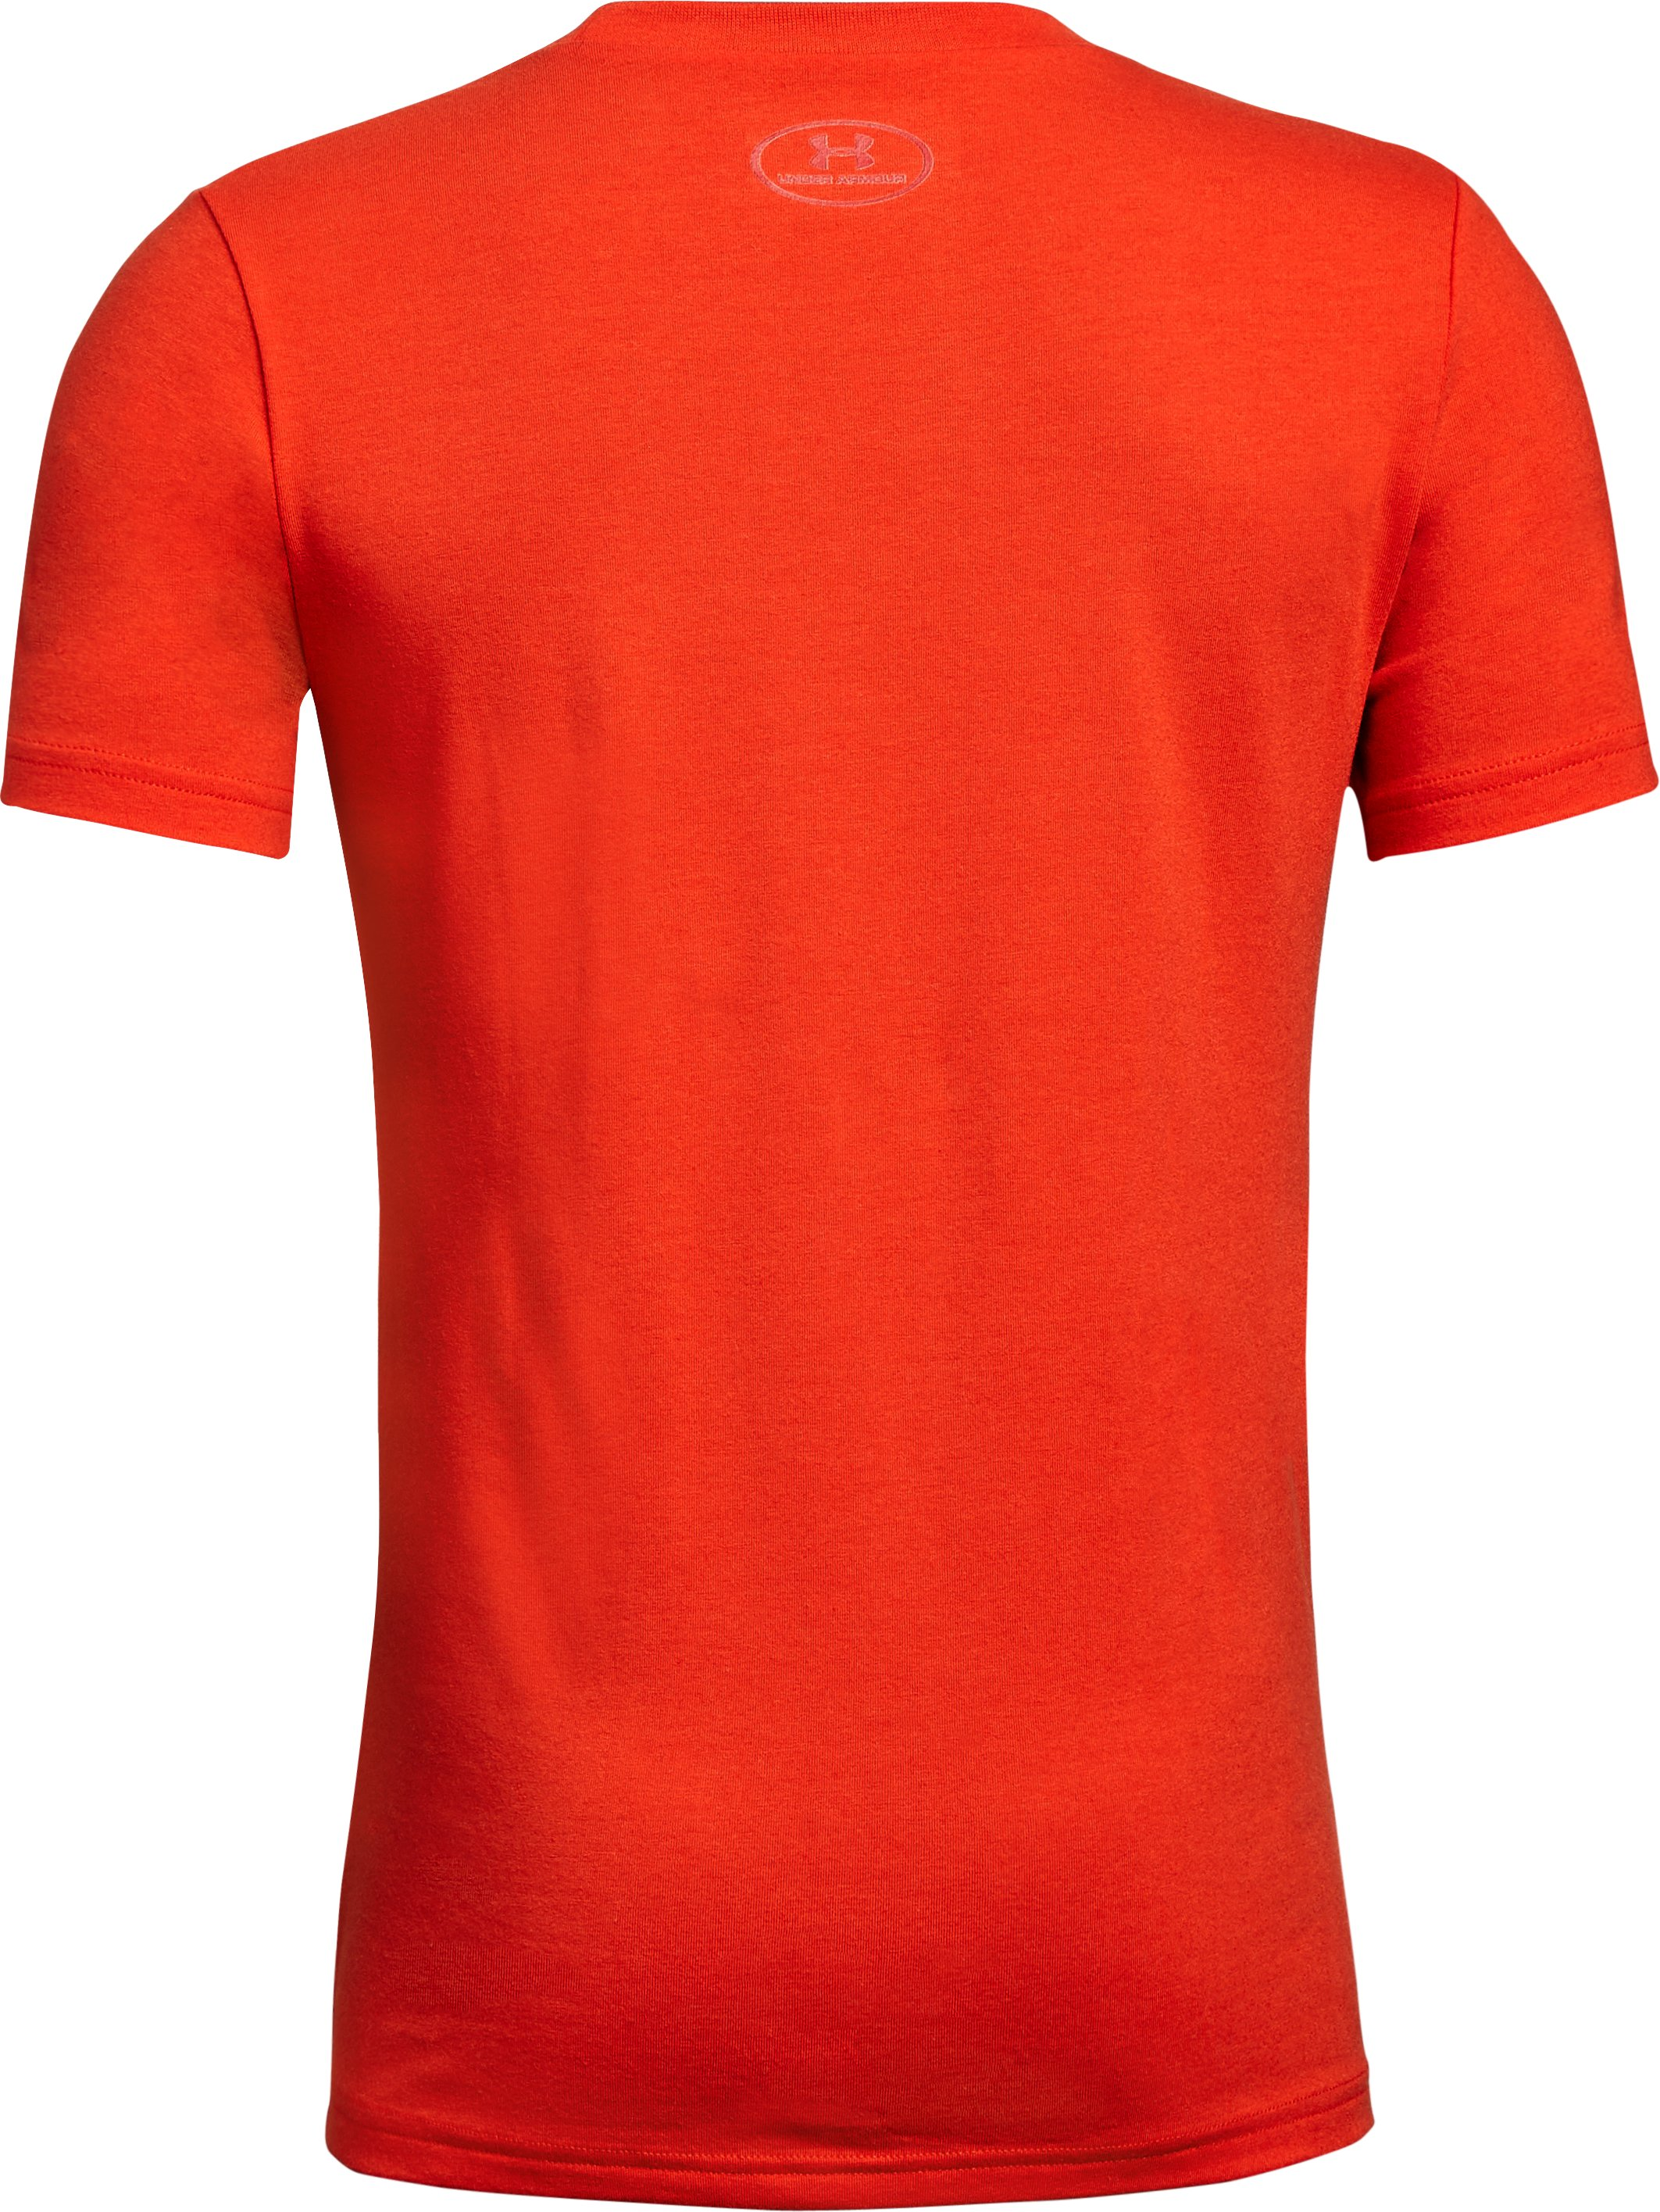 Boys' SC30 Proven Short Sleeve T-Shirt, RADIO RED,